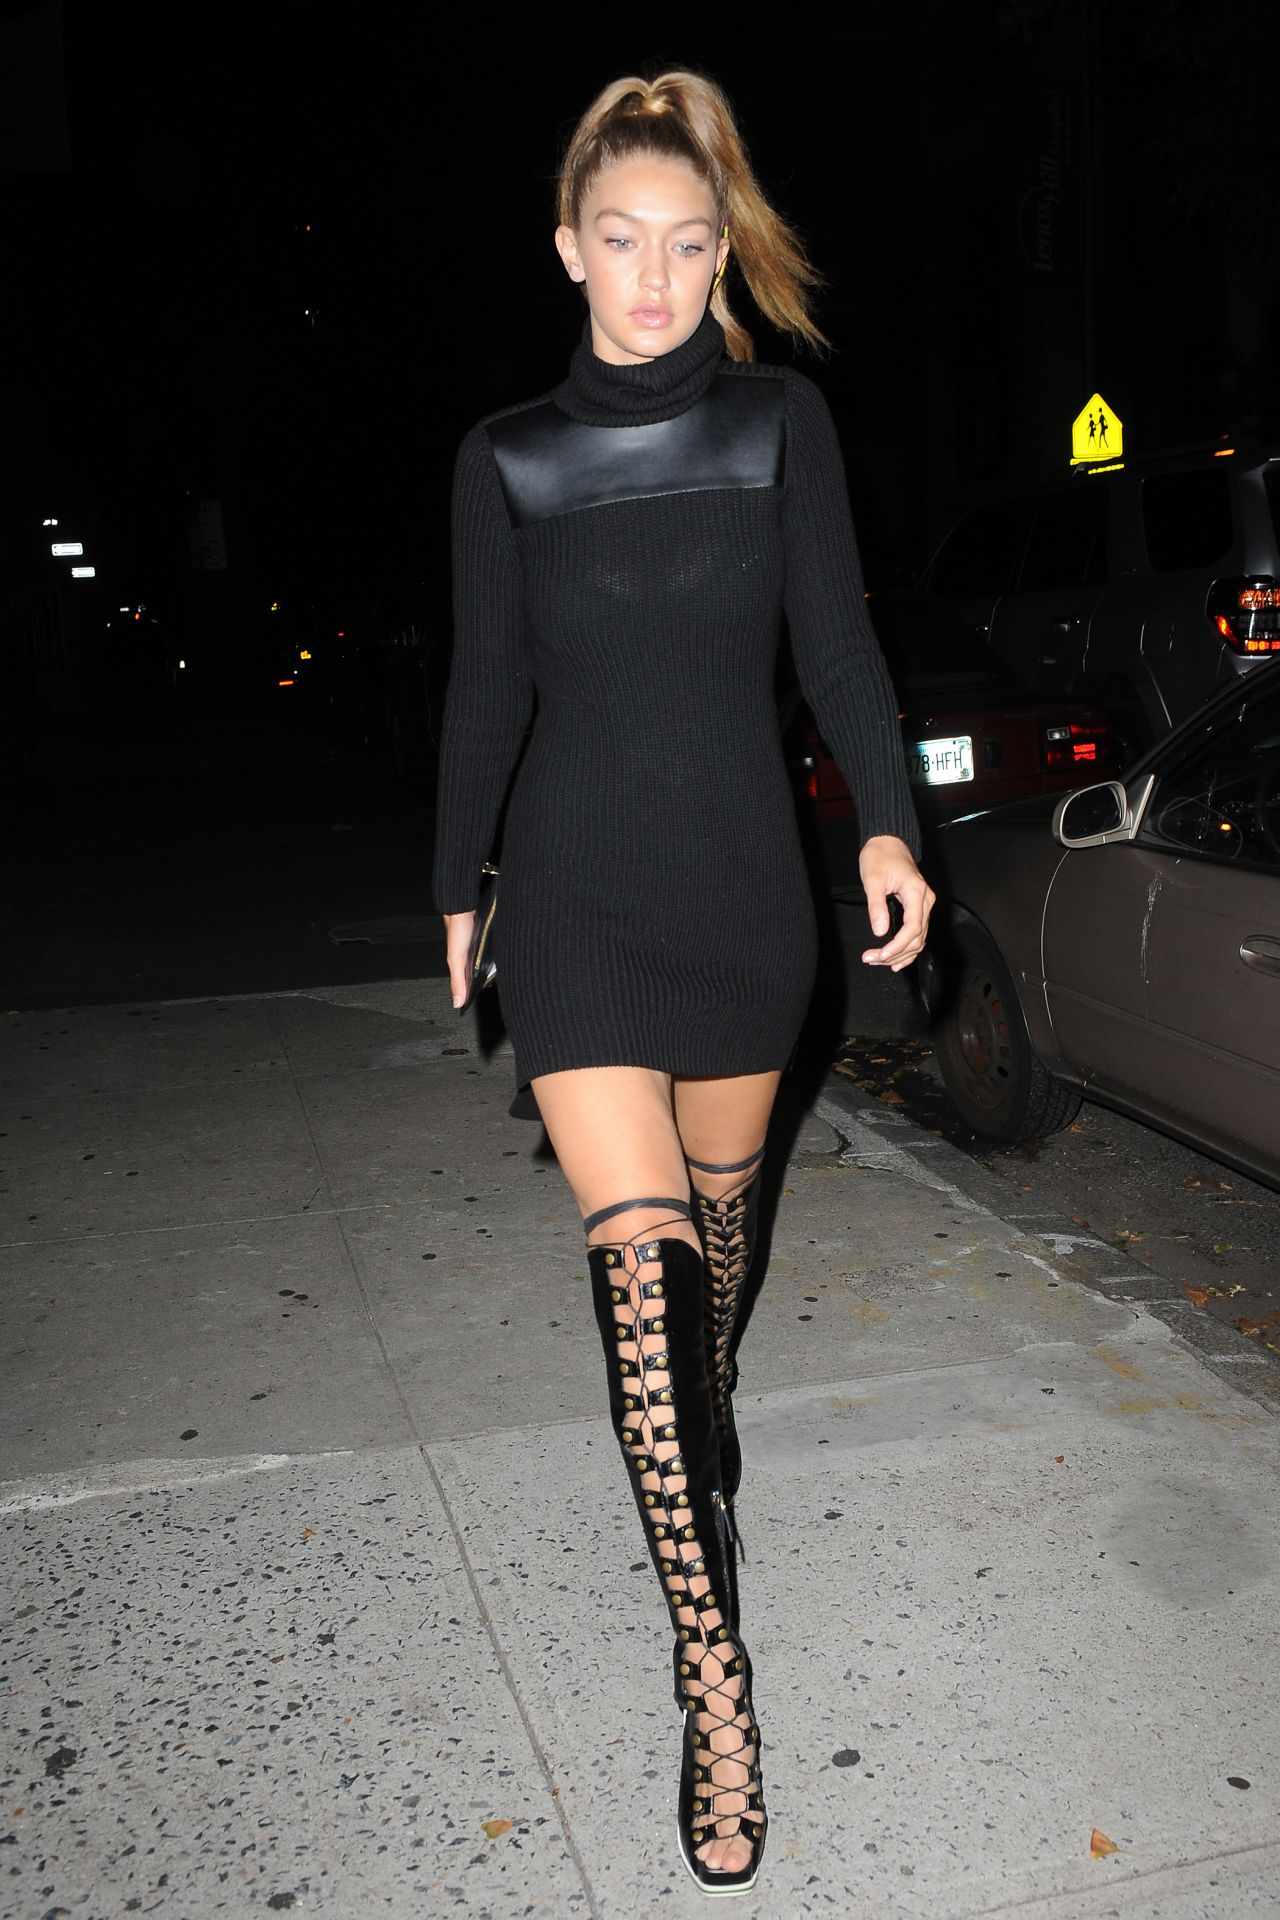 Gigi Hadid Night Out Style New York City September 2015